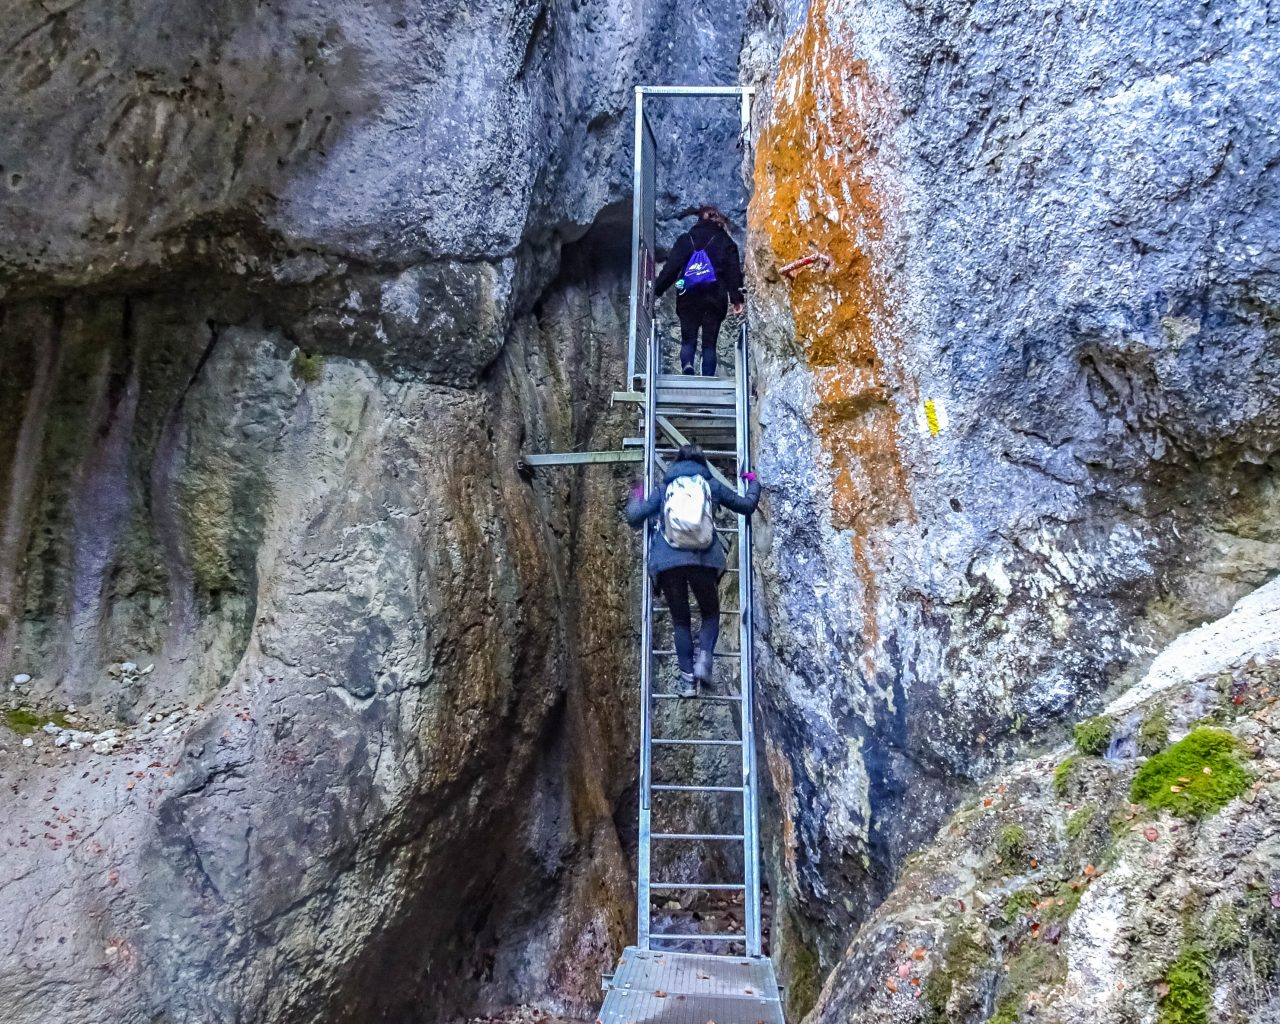 7-ladders-canyon-roemenie-trappen